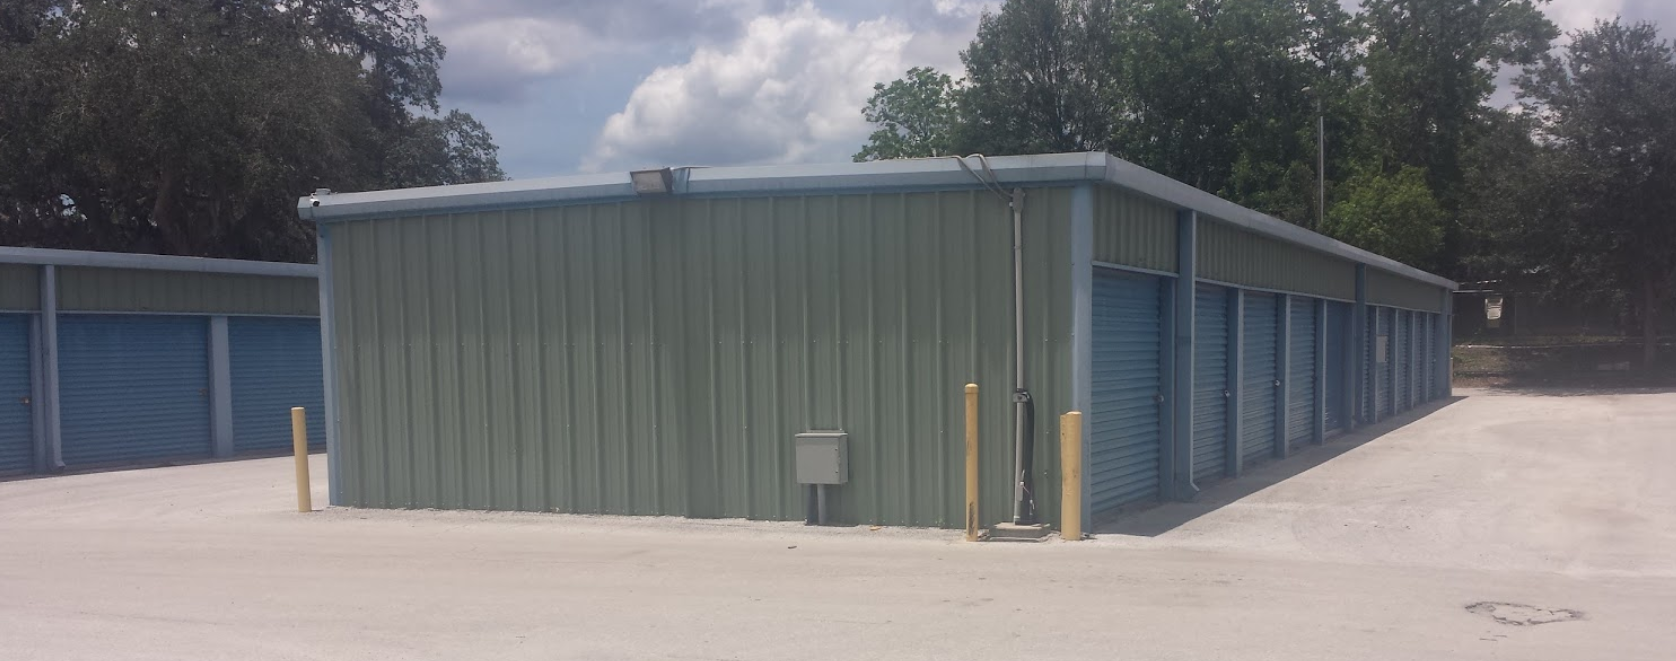 Self Storage in Port Richey & New Port Richey